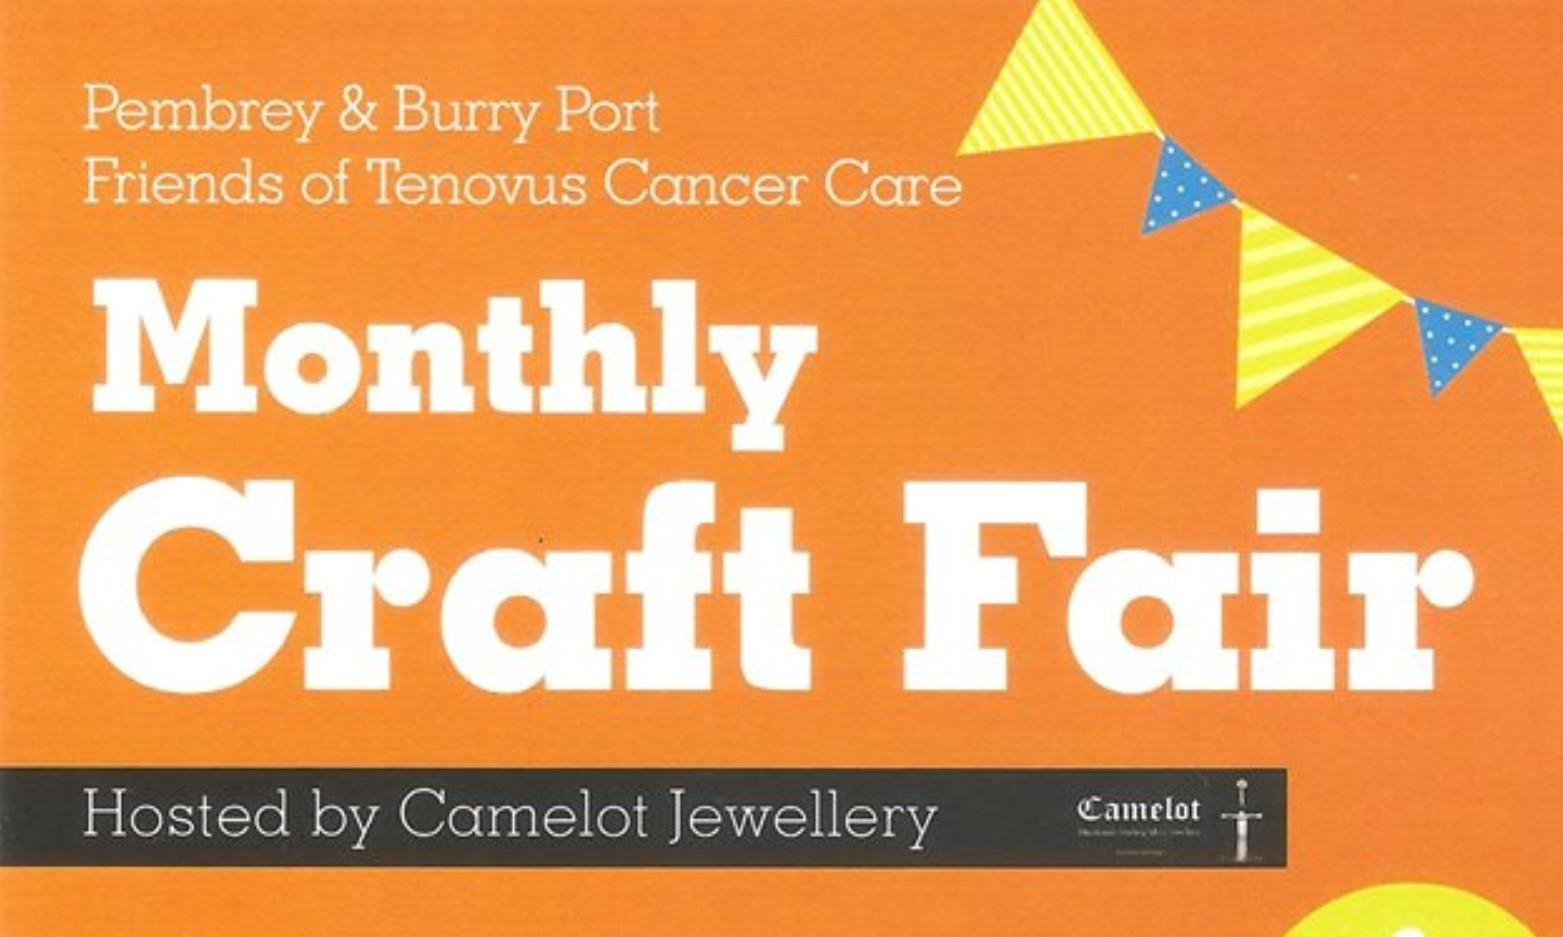 Whats on in Carmarthenshire Llanelli Monthly Craft Fair